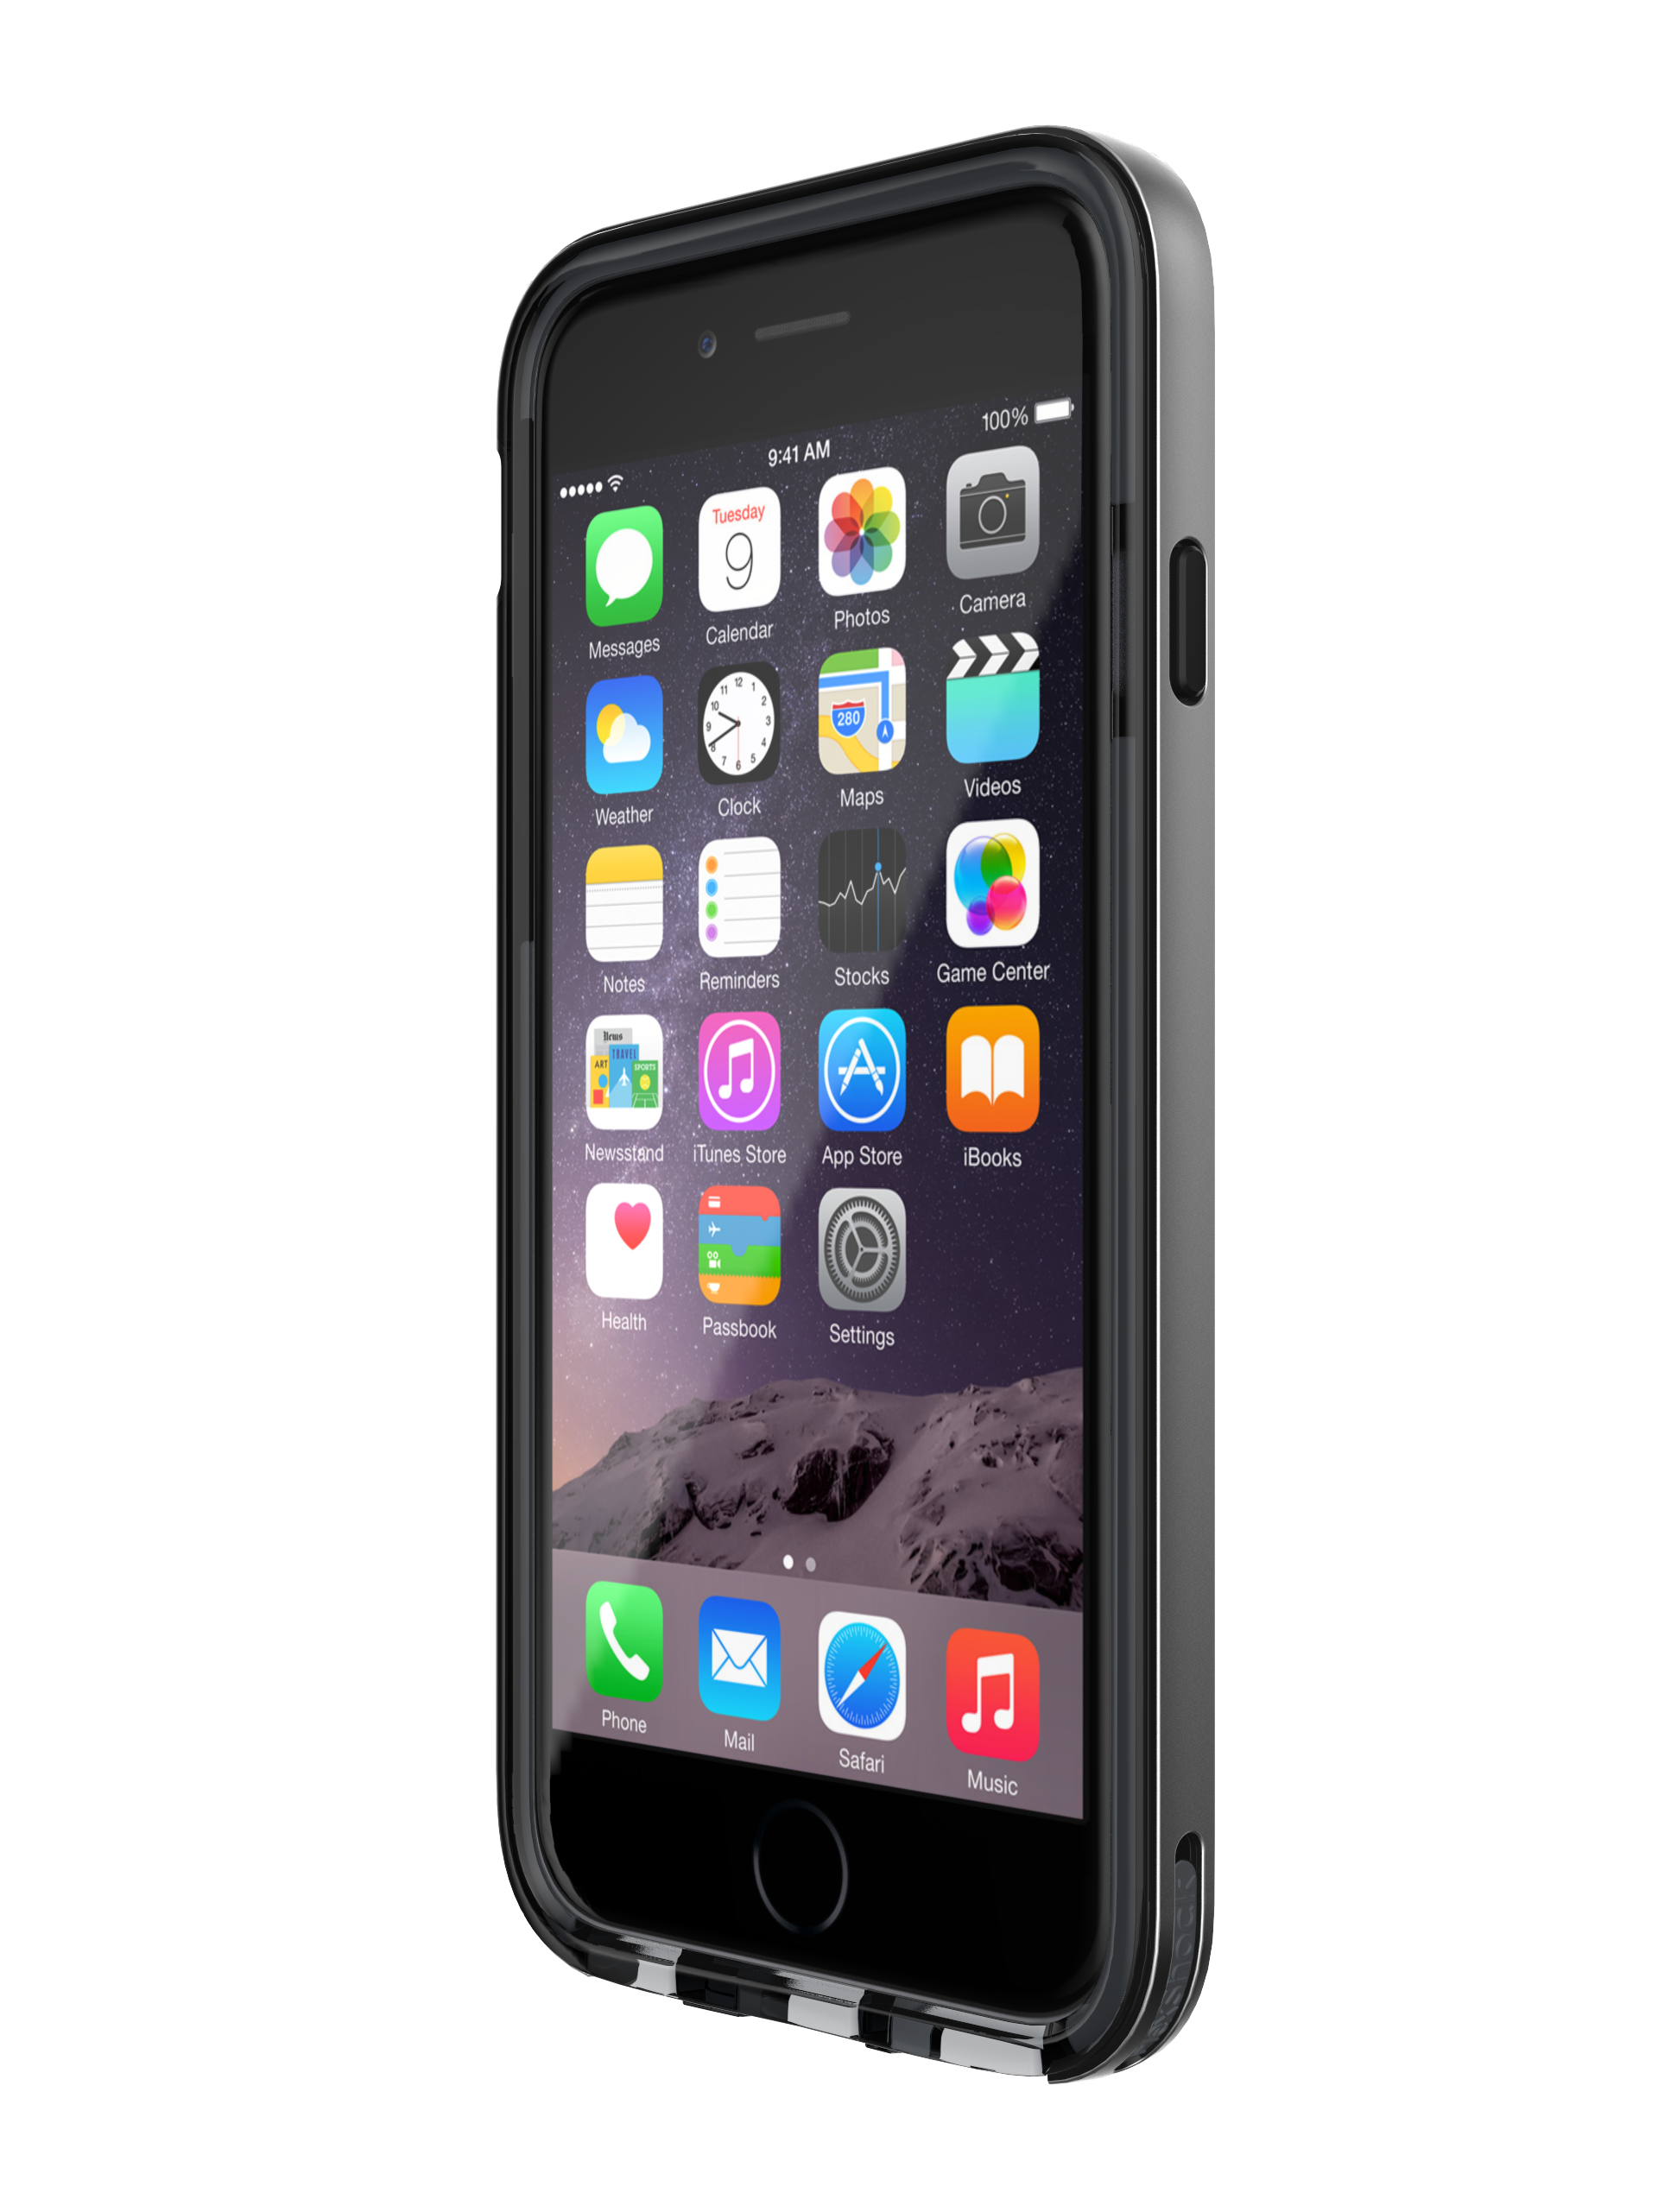 T21-5036 Tech21 Evo Elite for iPhone 6 - Space Grey (GreySmokey) (3)